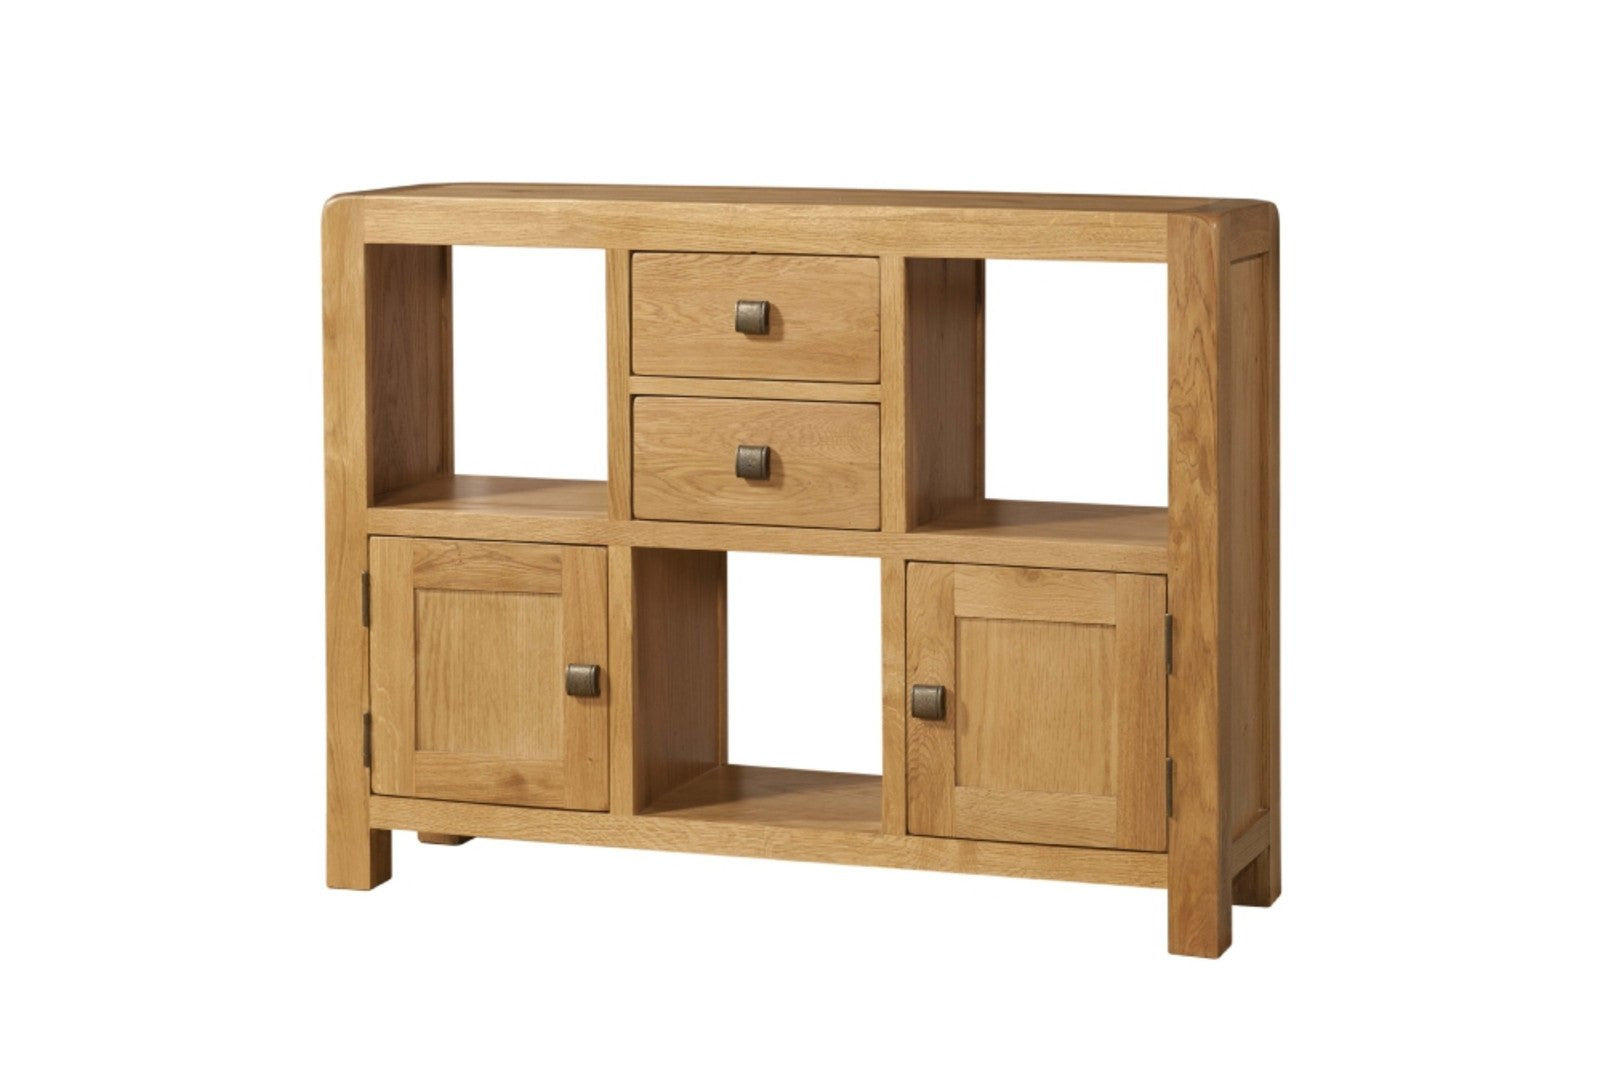 Avon Oak Low Display Unit With 2 Doors And 2 Drawers